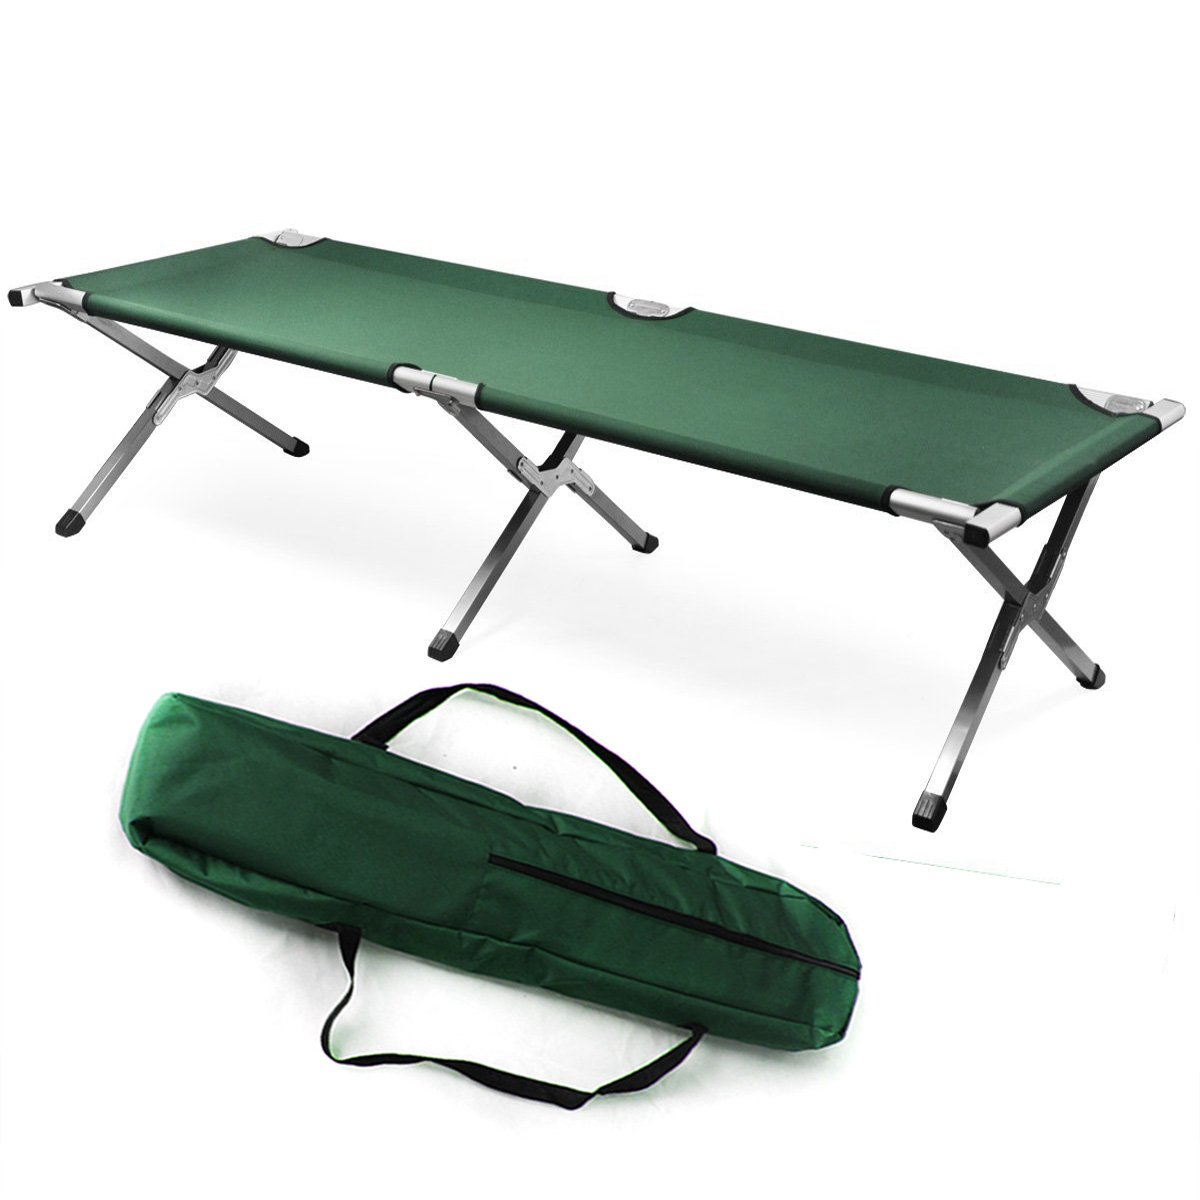 FCH Camping Cot Fordable Camping Cot for Tent With Carrying Bag, Green Portable Cot Bed for Kids/Adults Sleeping